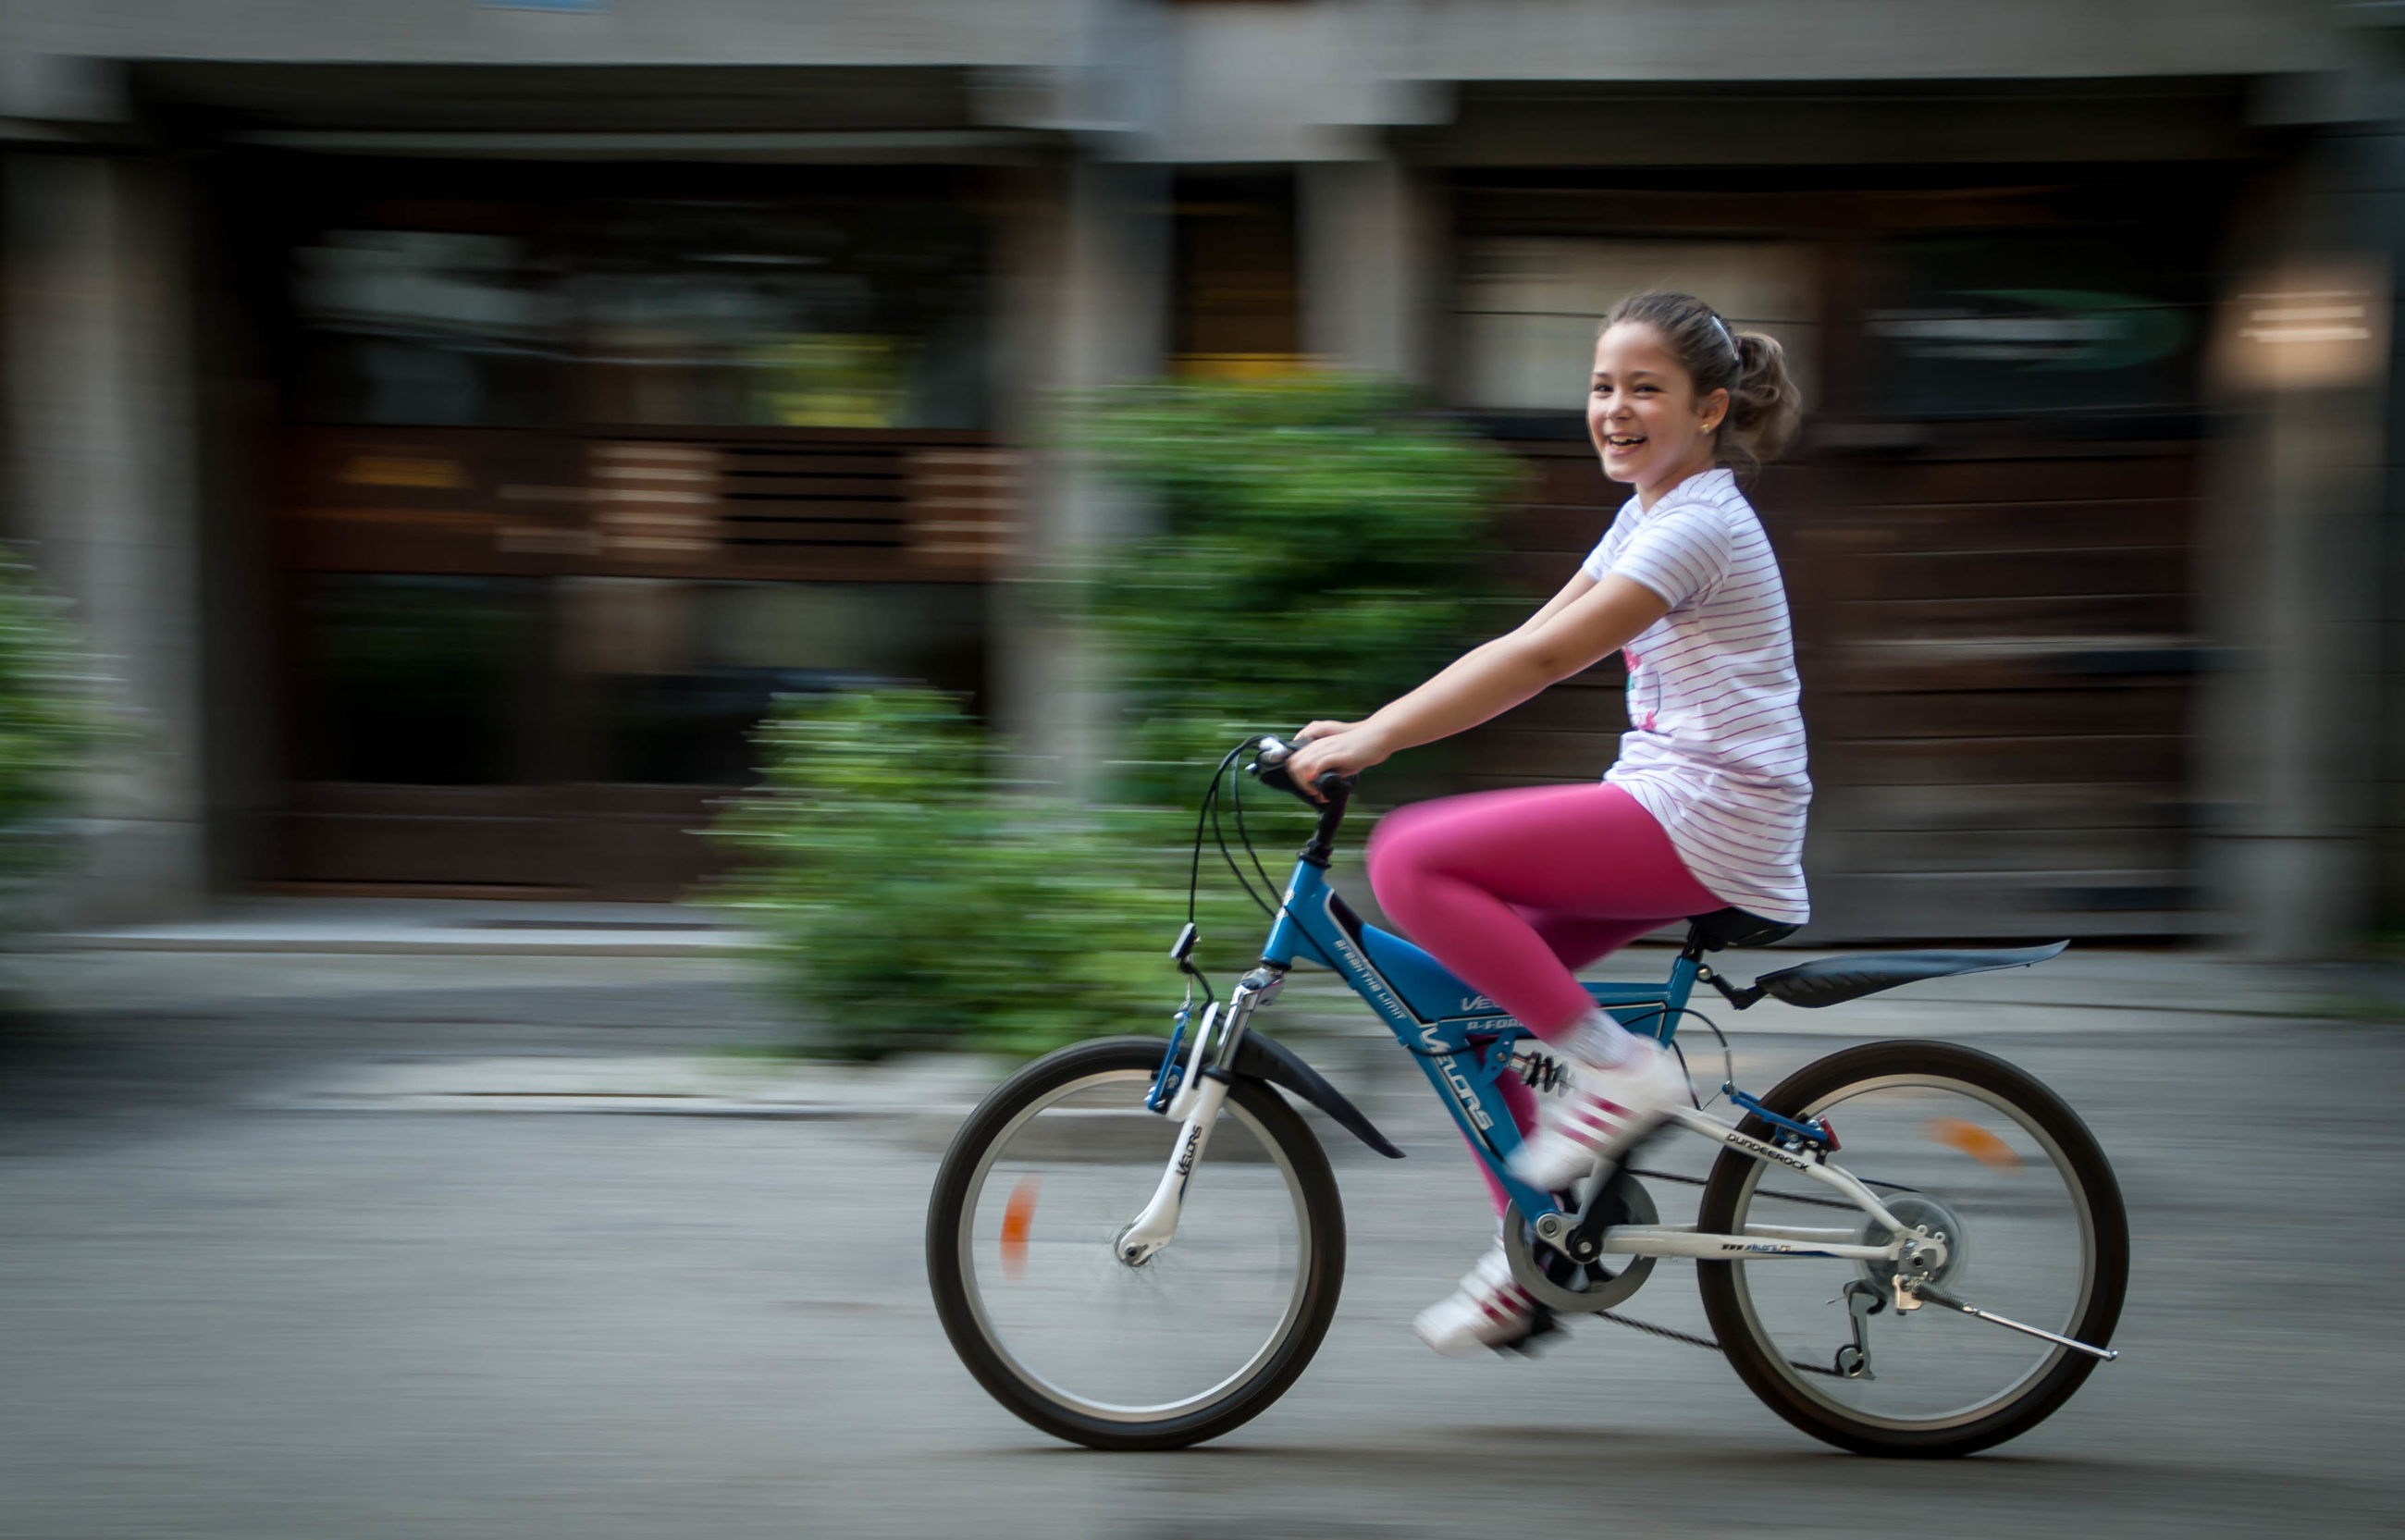 mode of transport, bicycle, transportation, blurred motion, motion, travel, land vehicle, on the move, riding, speed, full length, casual clothing, lifestyles, leisure activity, city life, holding, city, street, person, selective focus, looking at camera, outdoors, young adult, day